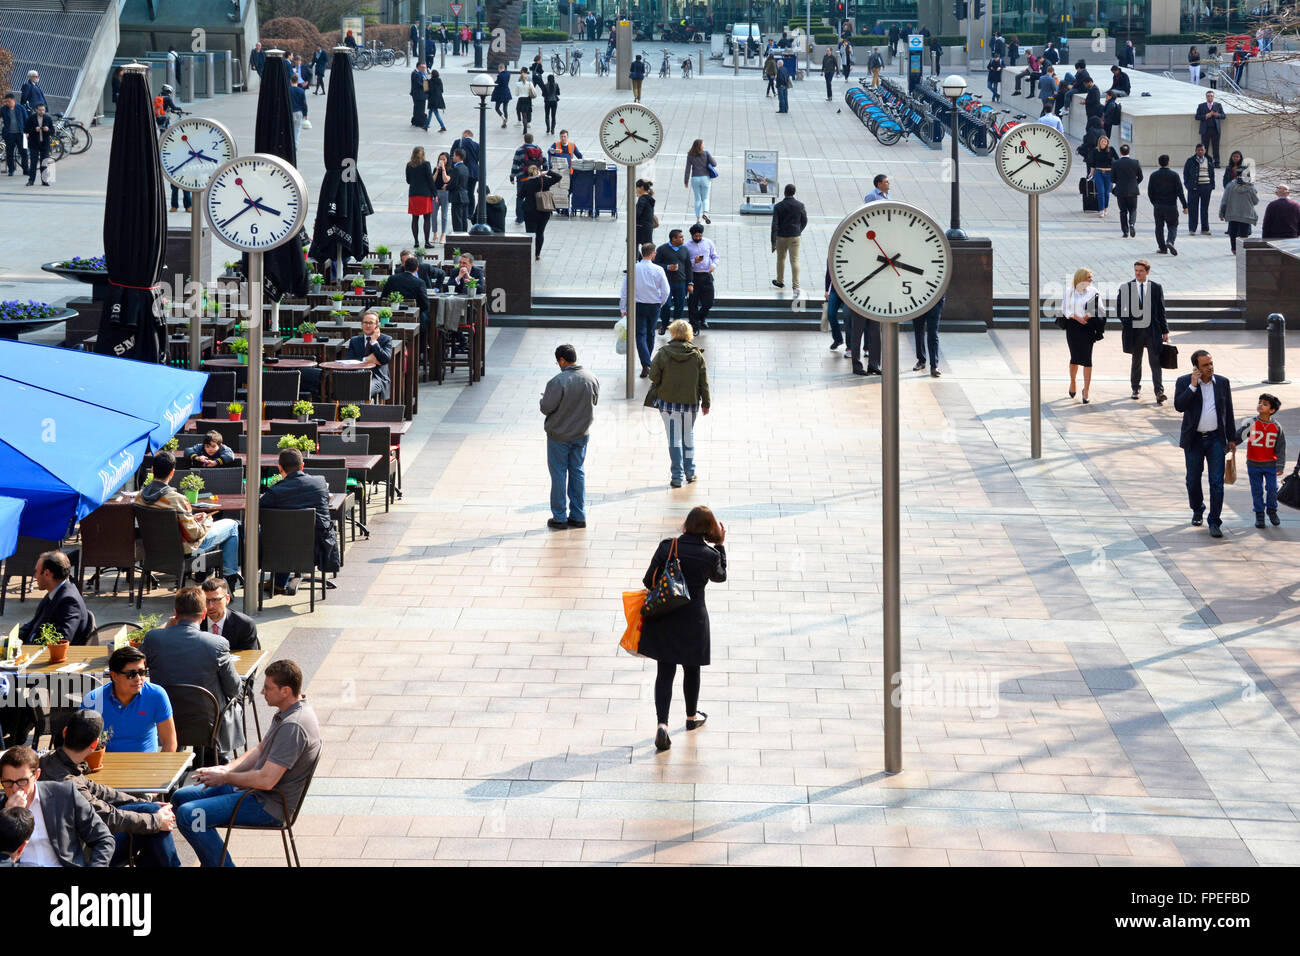 Five of six public clocks installation by Konstantin Grcic on Reuters Plaza at Canary Wharf London Docklands Tower - Stock Image